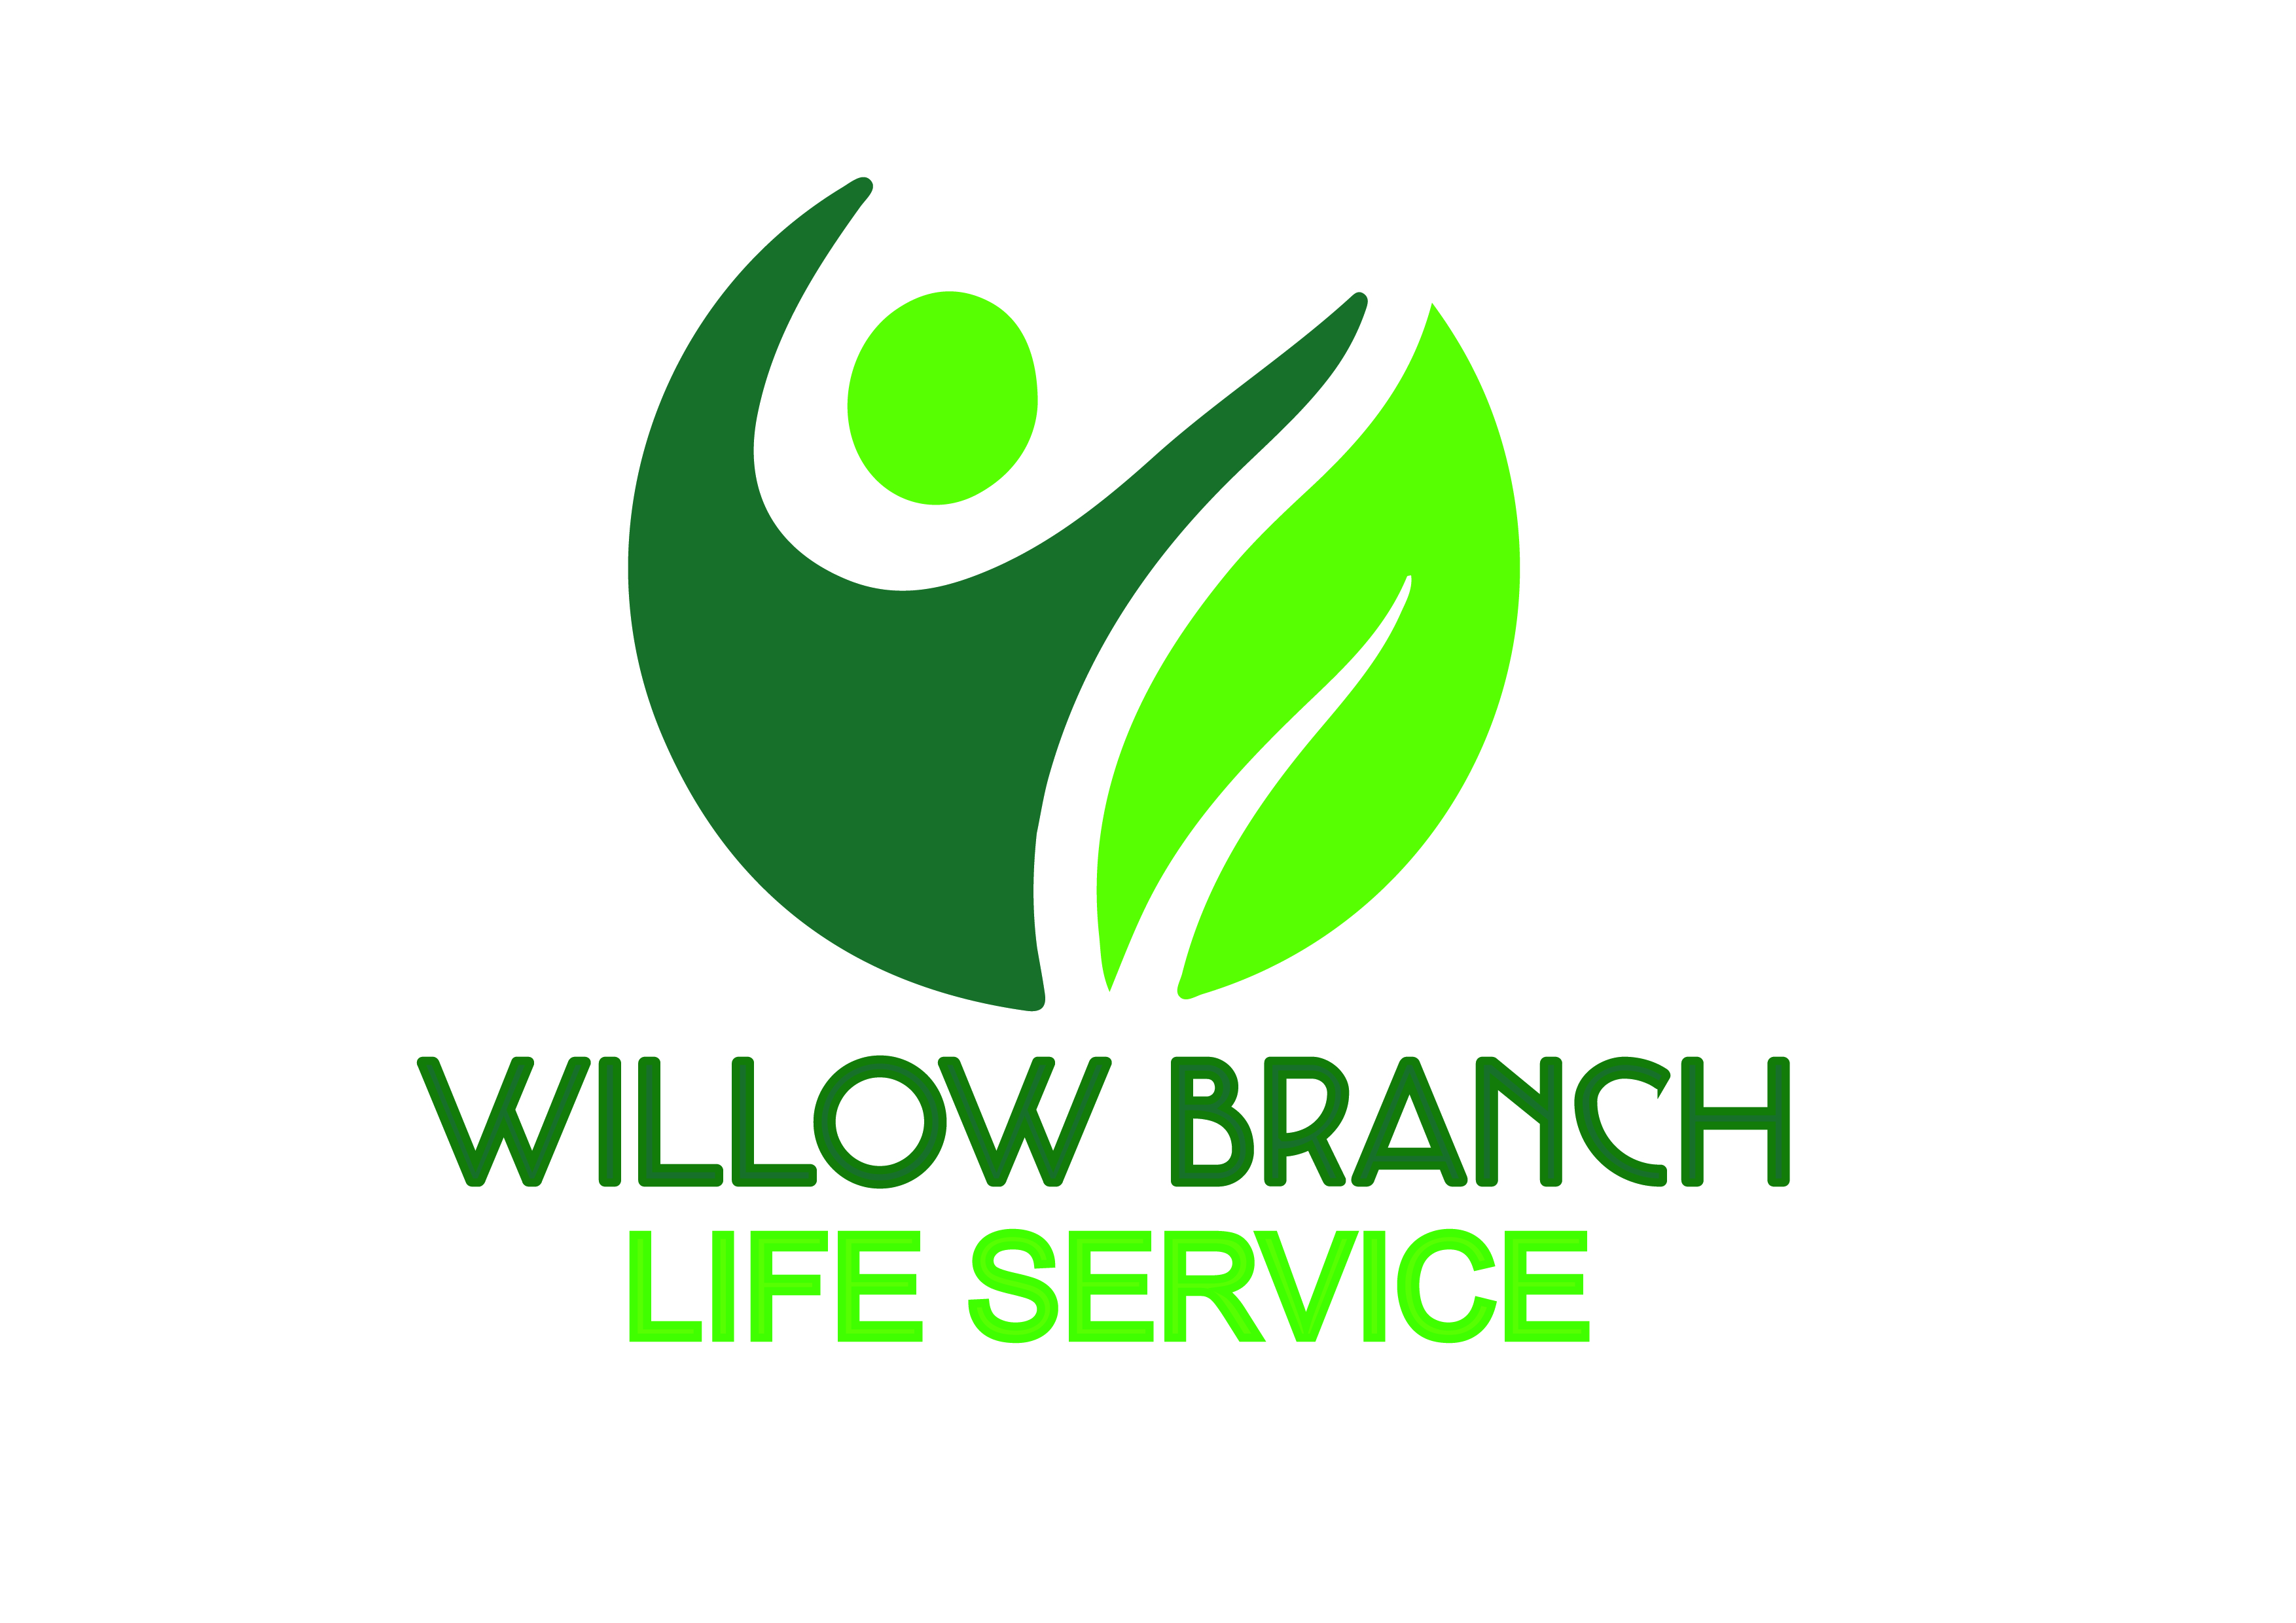 Logo Design by Anum Aamir - Entry No. 5 in the Logo Design Contest Artistic Logo Design for Willow Branch Life Service.